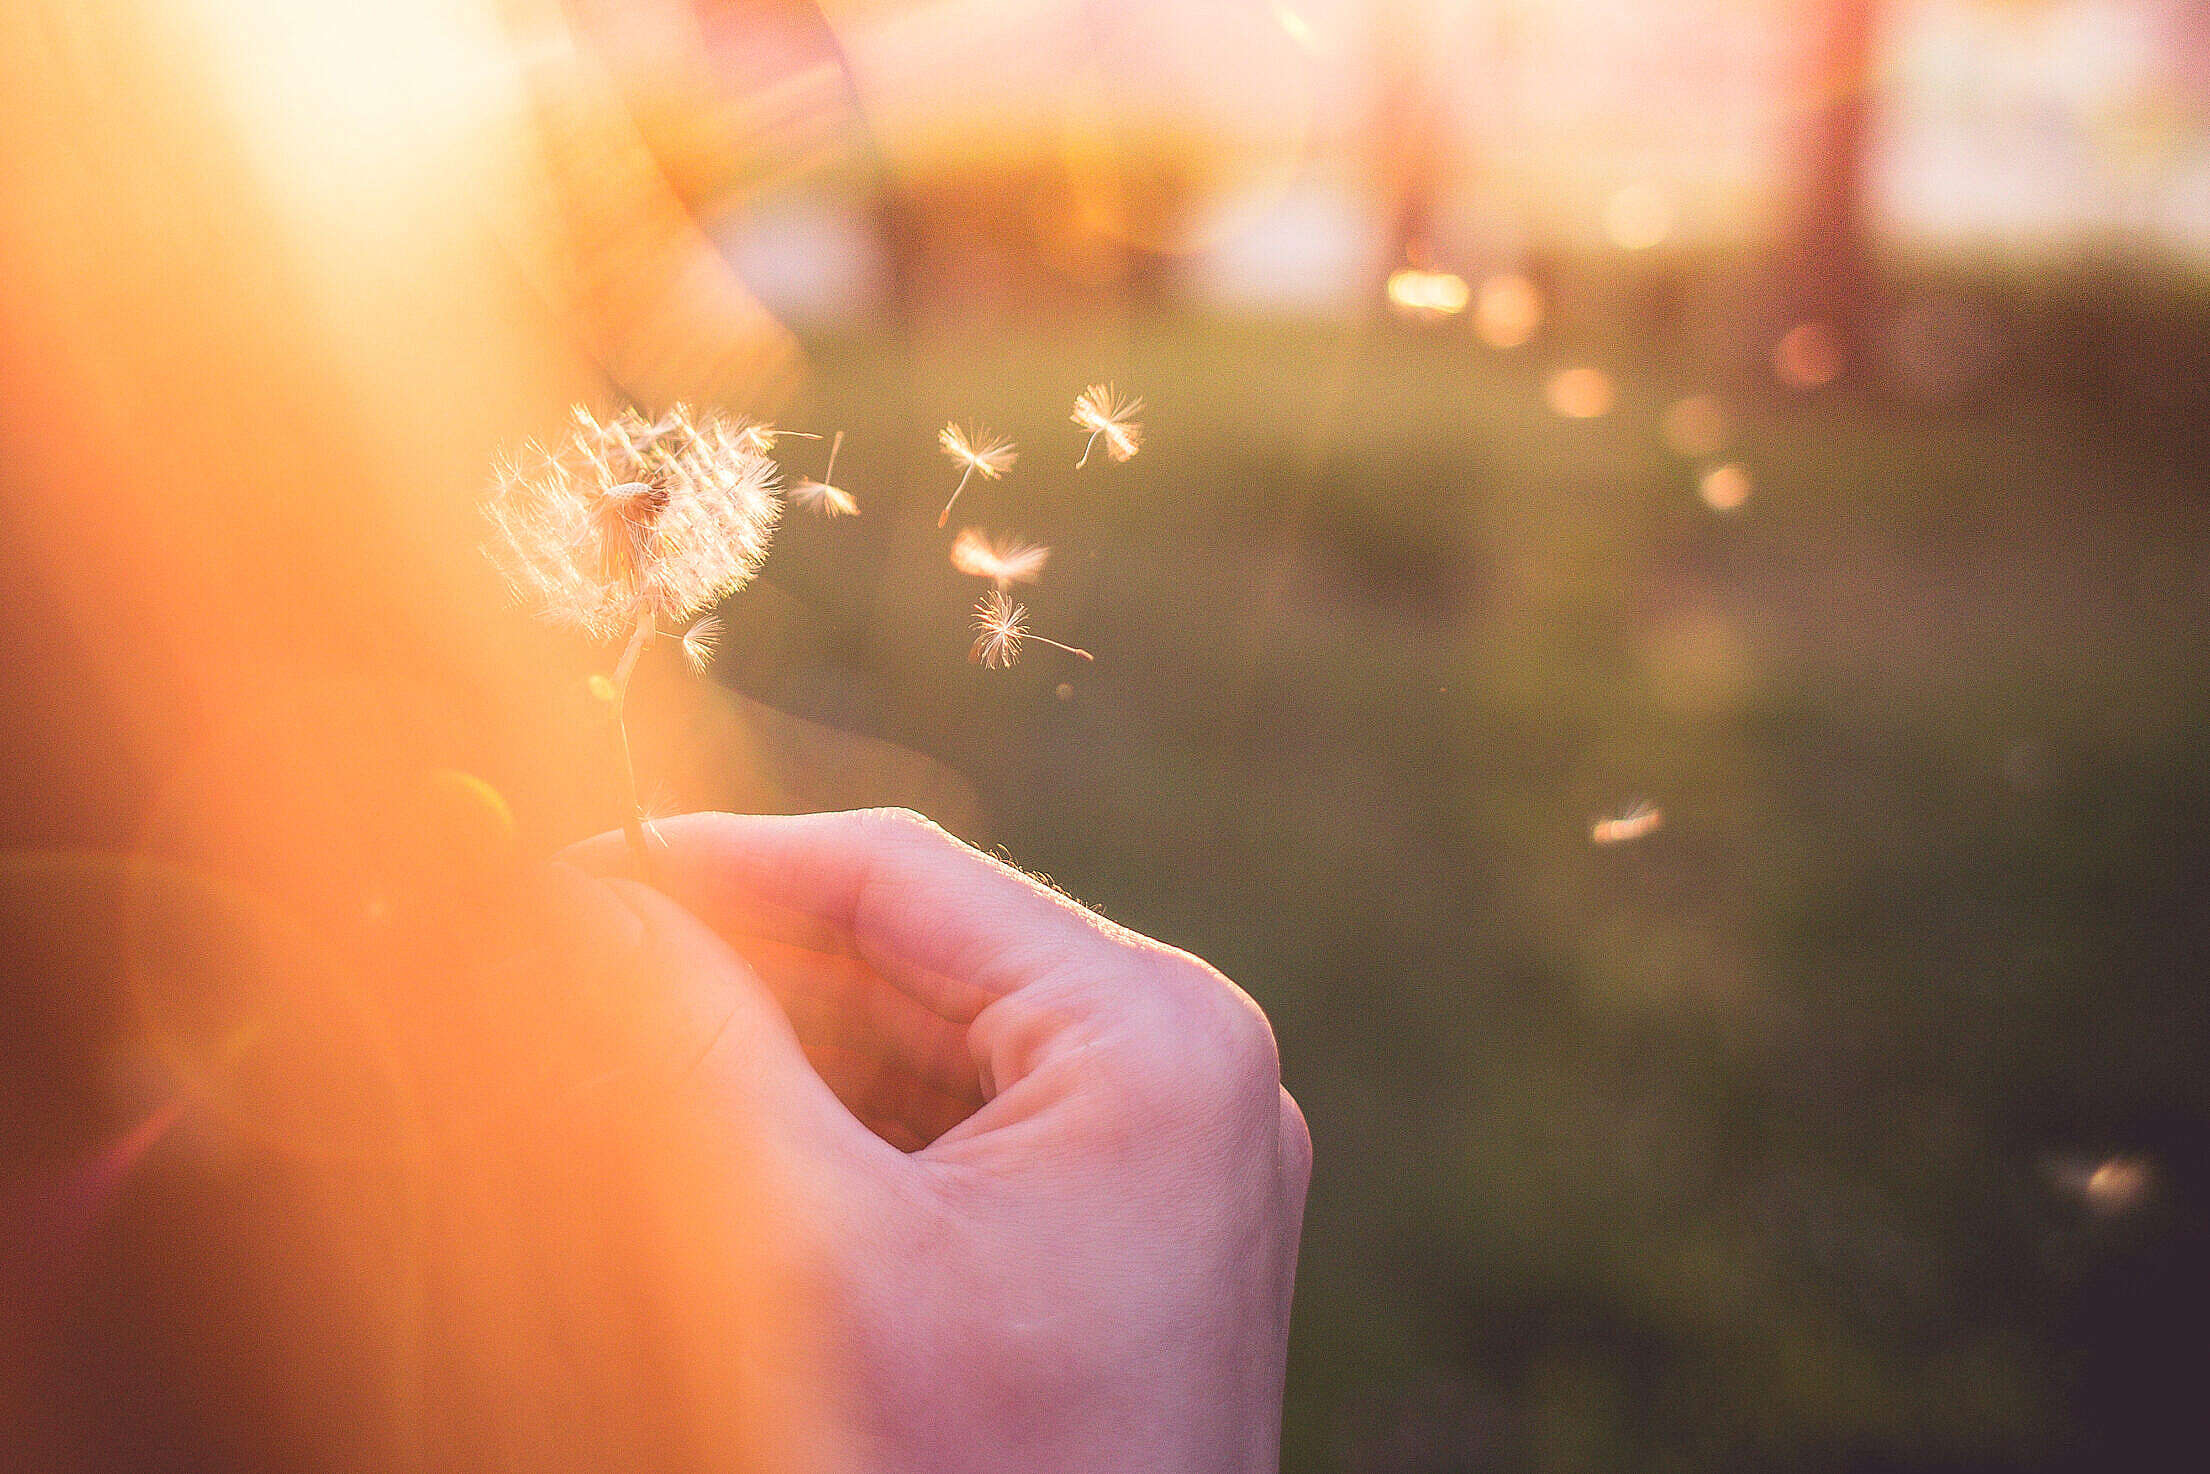 Girl Blowing a Blowball/Dandelion Free Stock Photo